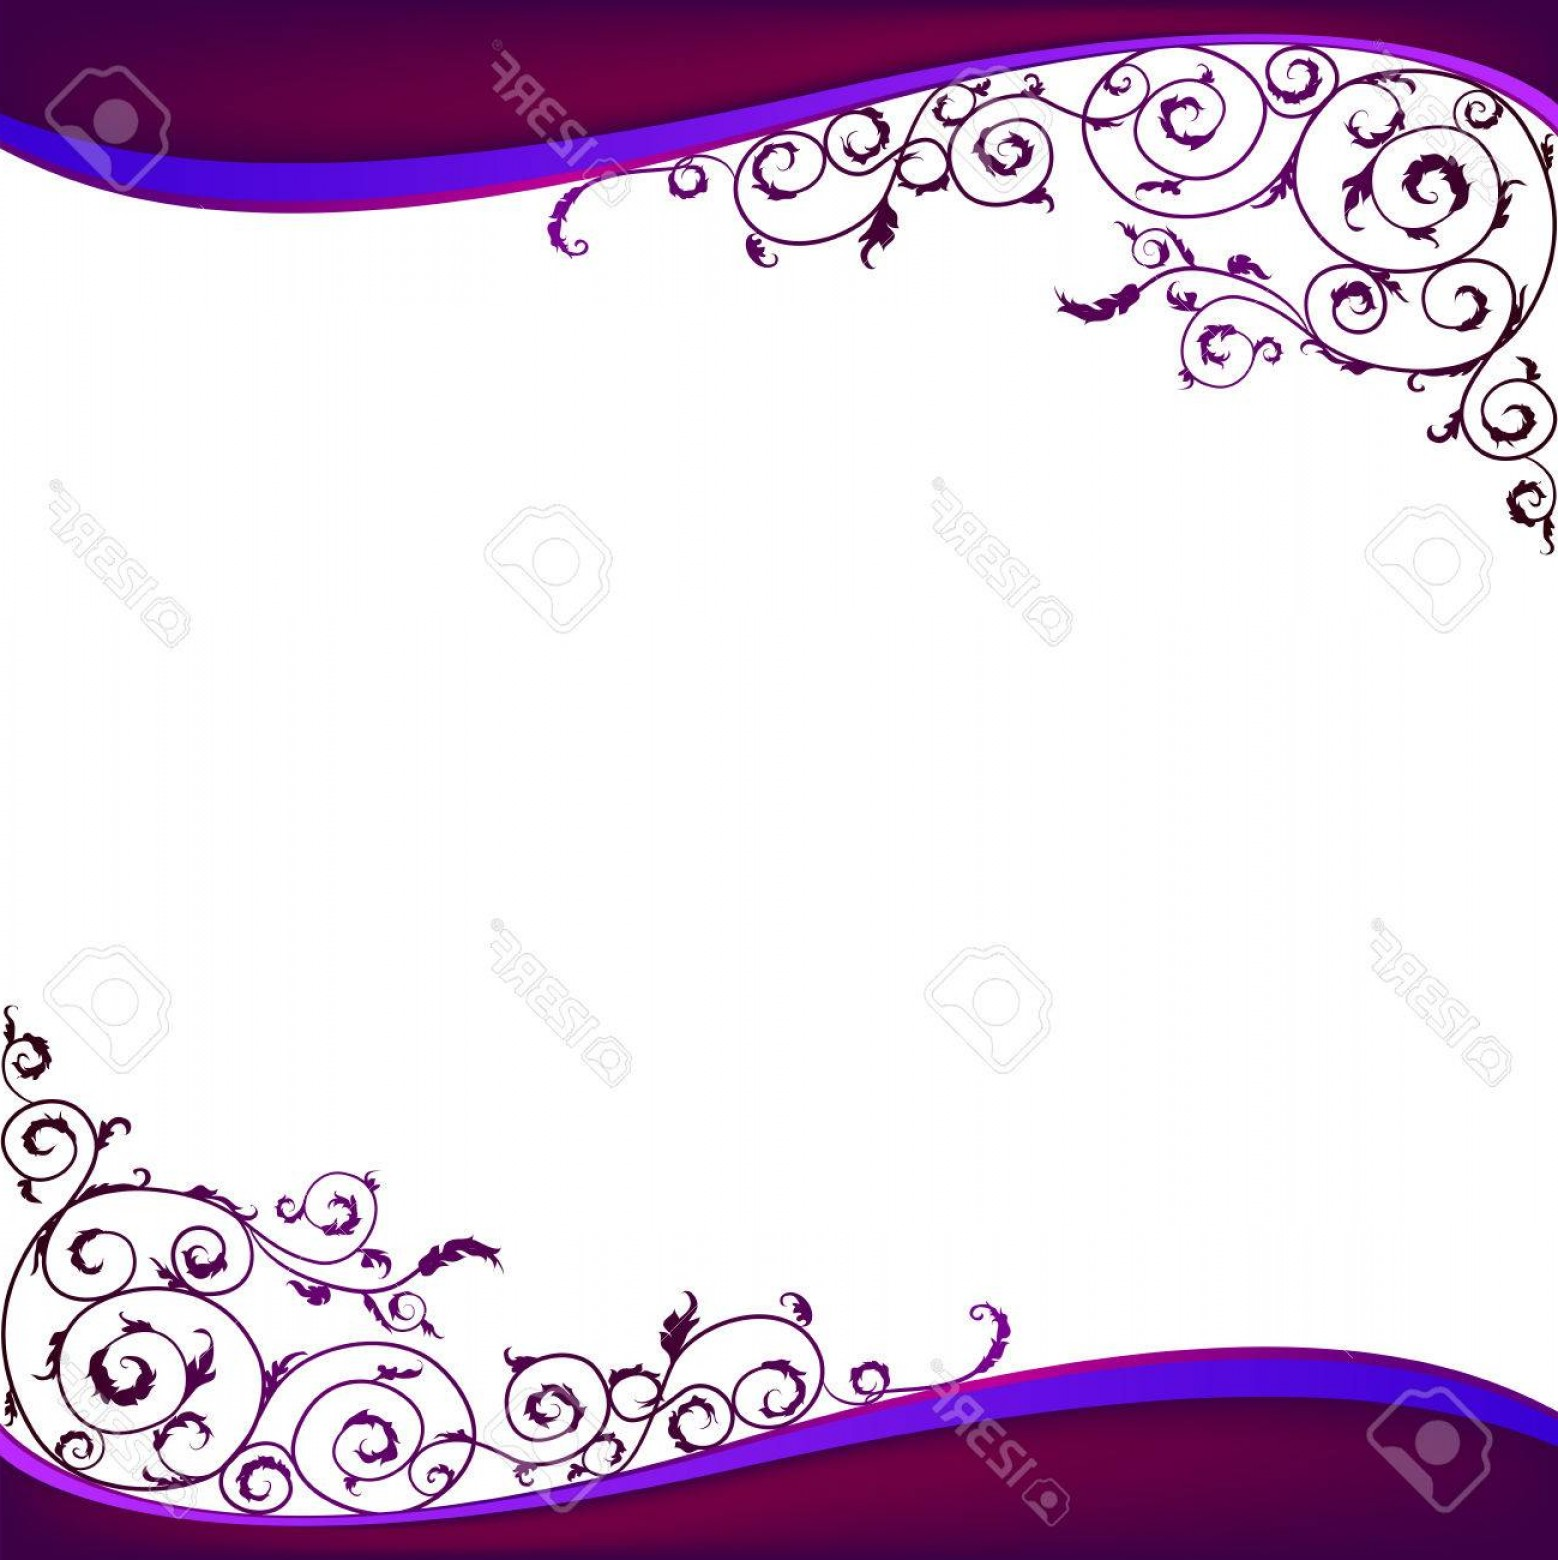 Violet Swirl Design Vector: Photostock Vector Purple And White Abstract Background With Swirls